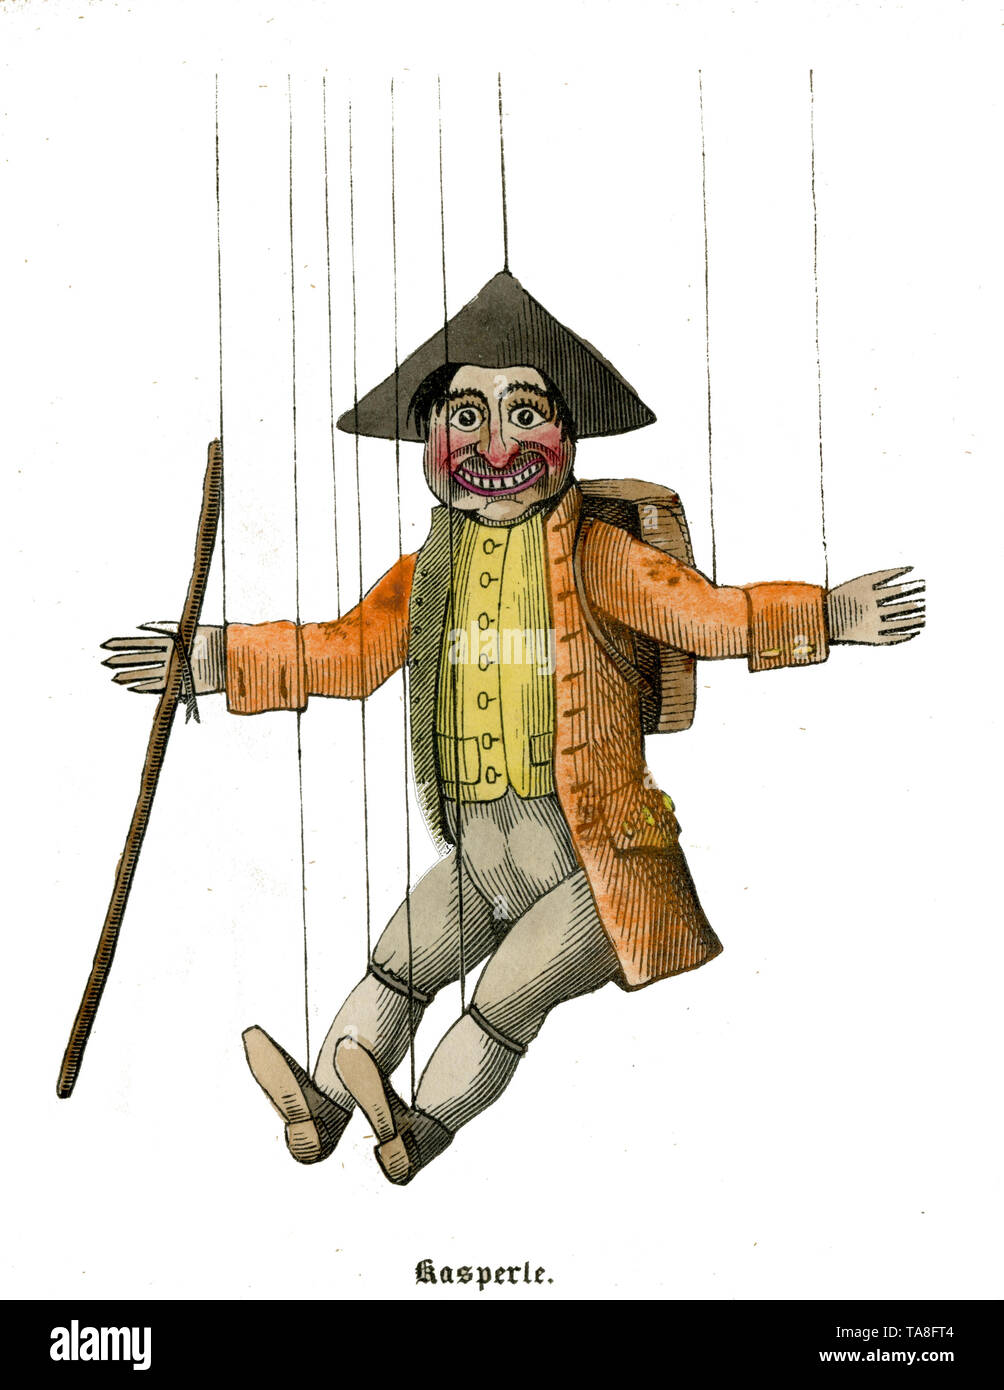 Kaspele figure from The Puppet Show by Doctor Faust, 1850 ,  (, ) - Stock Image